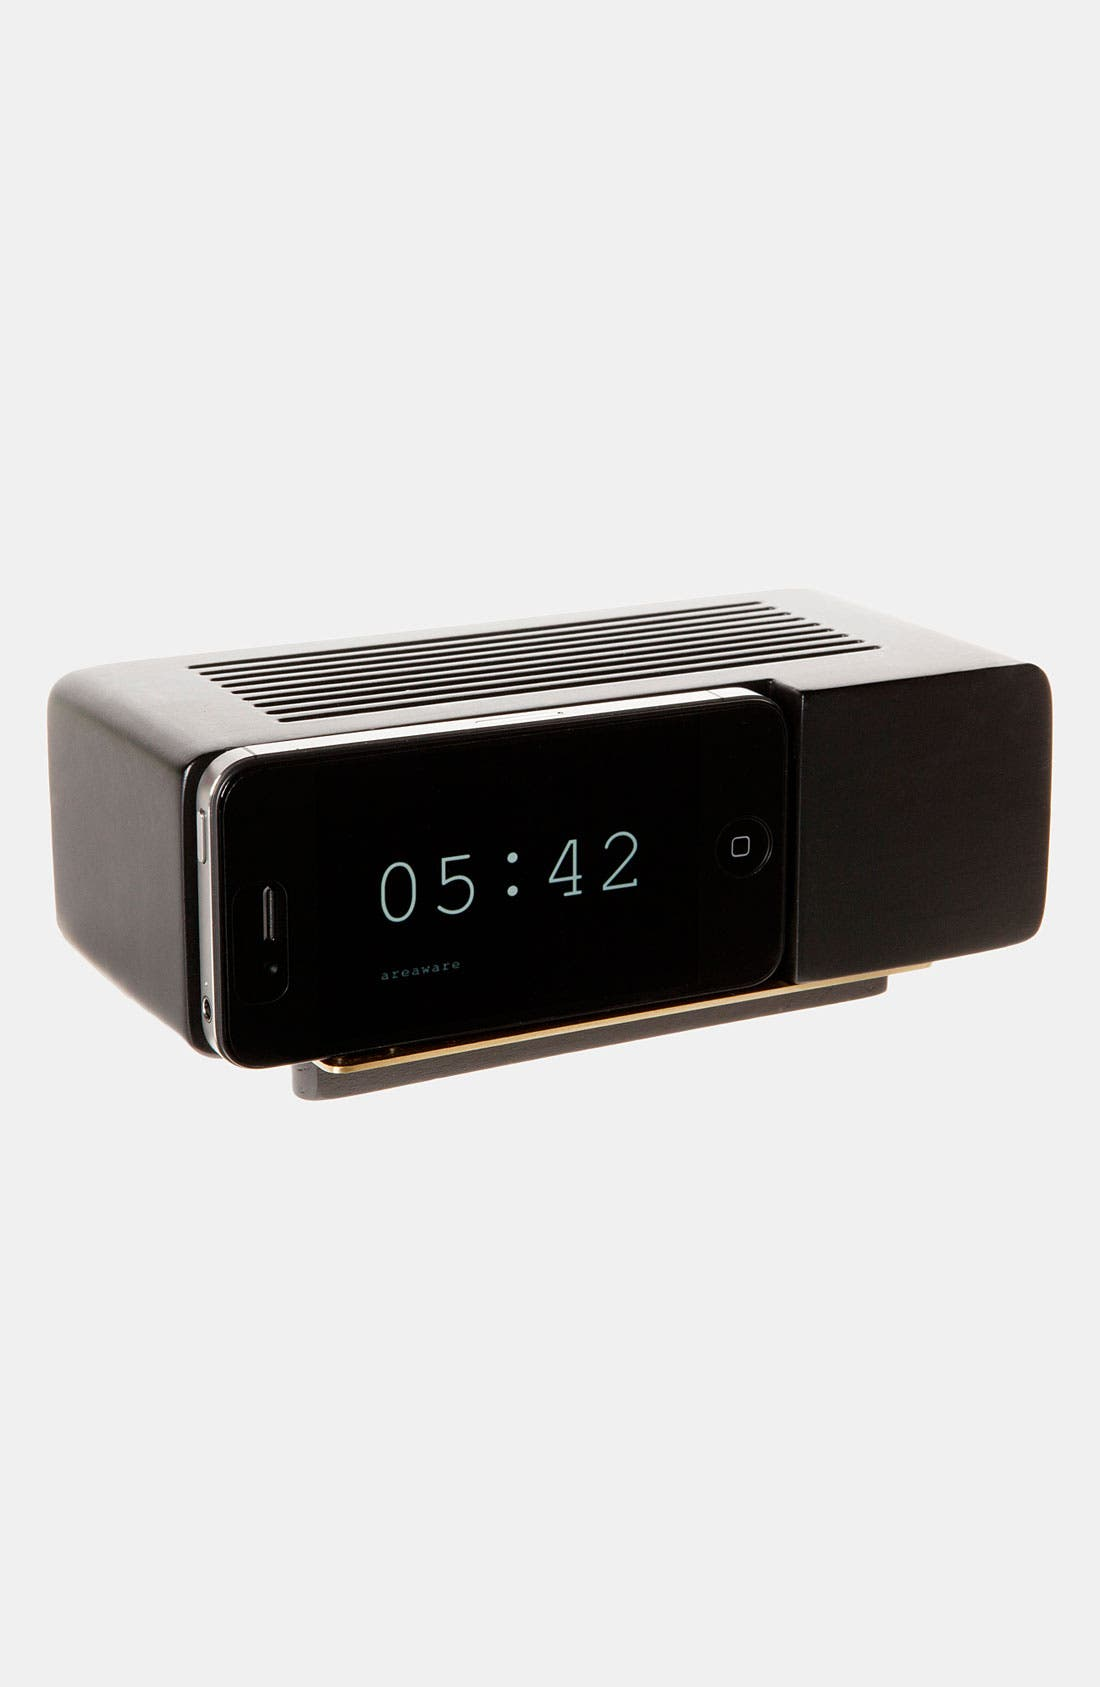 Alternate Image 1 Selected - Retro iPhone Alarm Dock